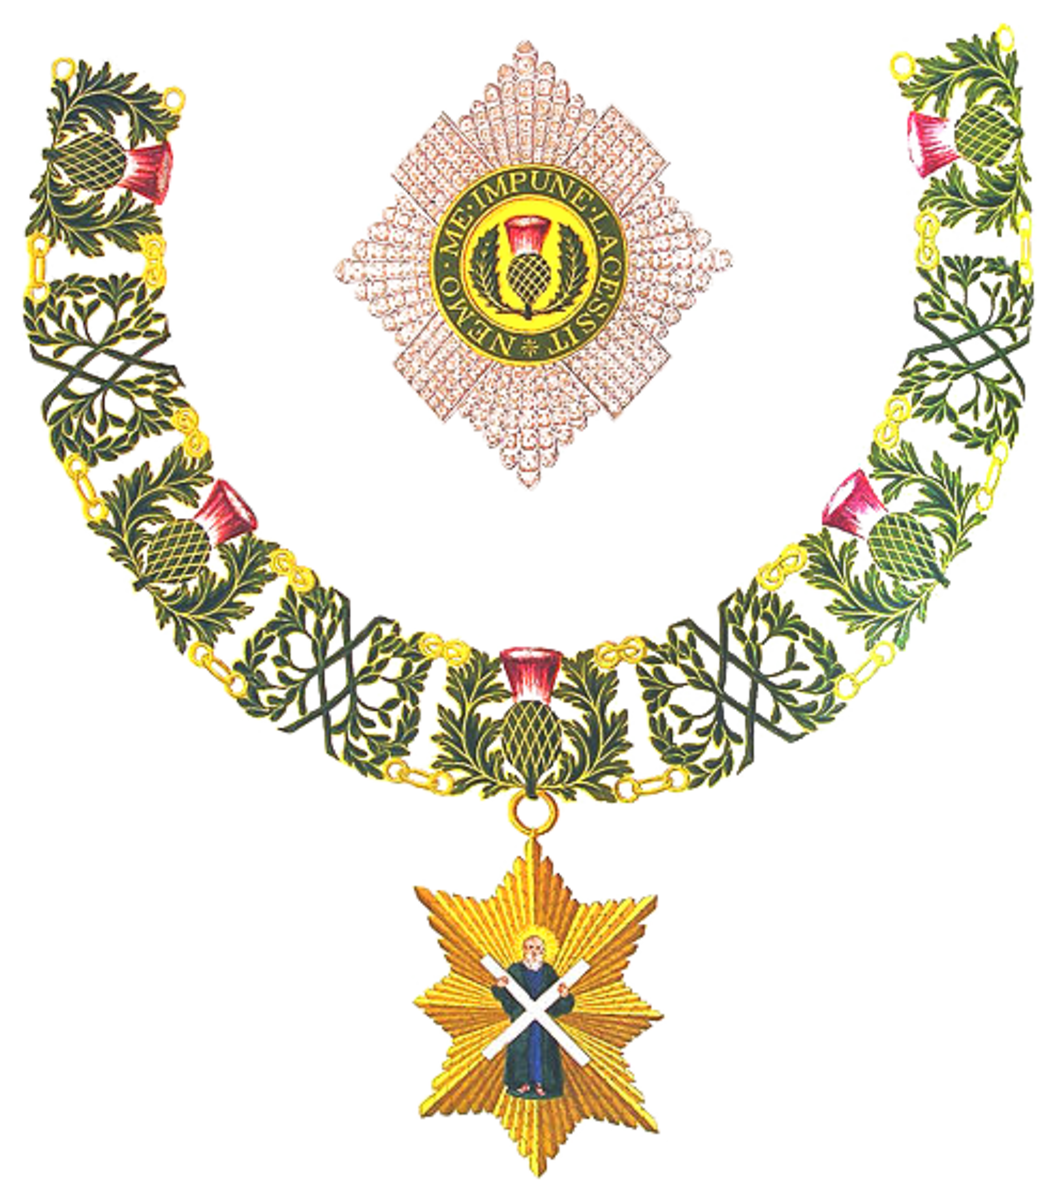 Most Ancient and Most Noble Order of the Thistle, second only to England's Most Noble Order of the Garter.